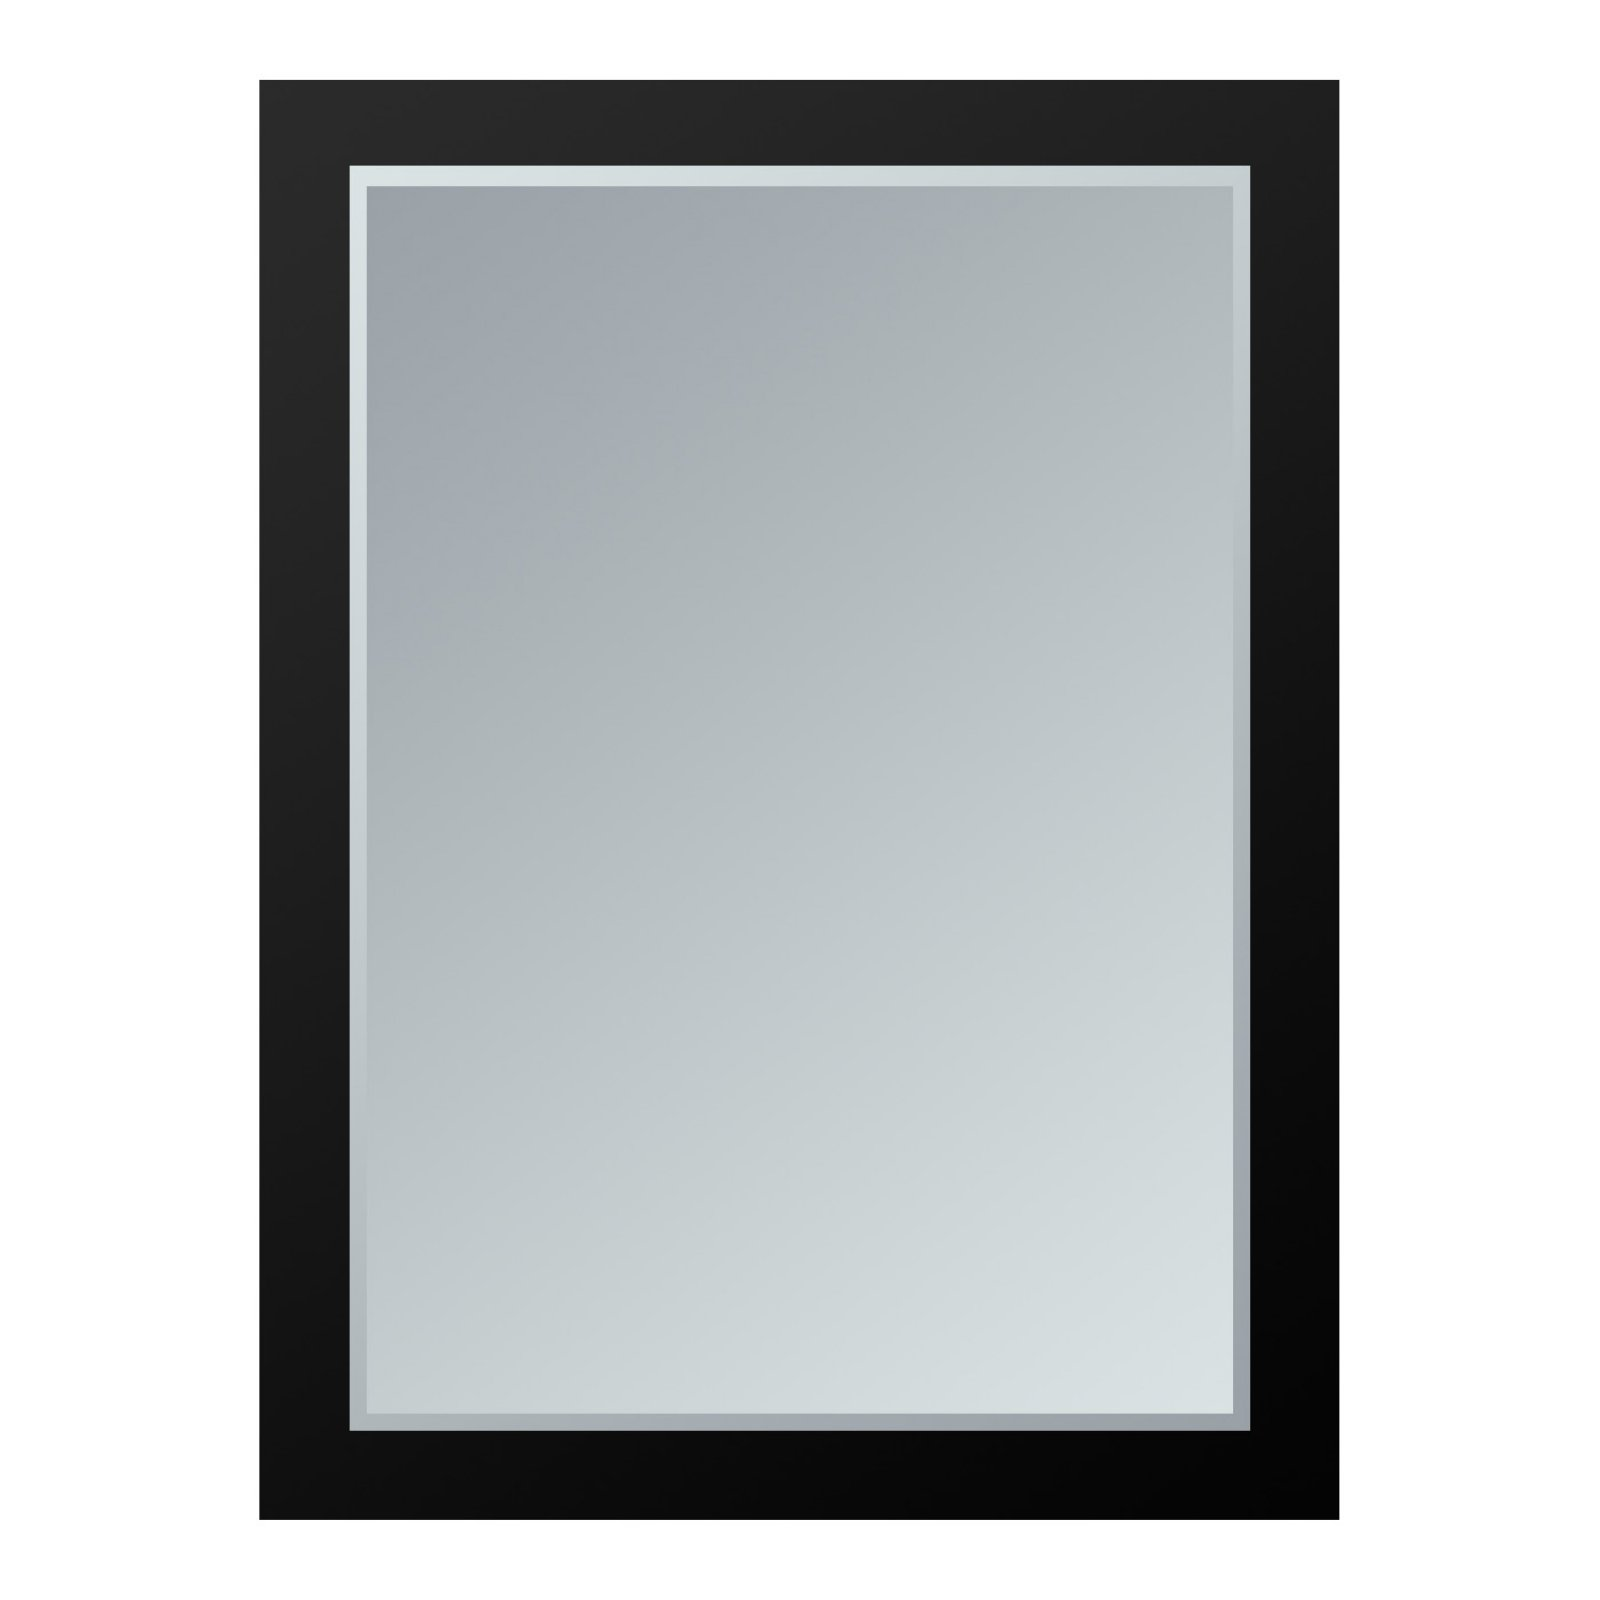 Décor Wonderland Aris Modern Bathroom Mirror 23.6W x 31.5H in. by Decor Wonderland of US